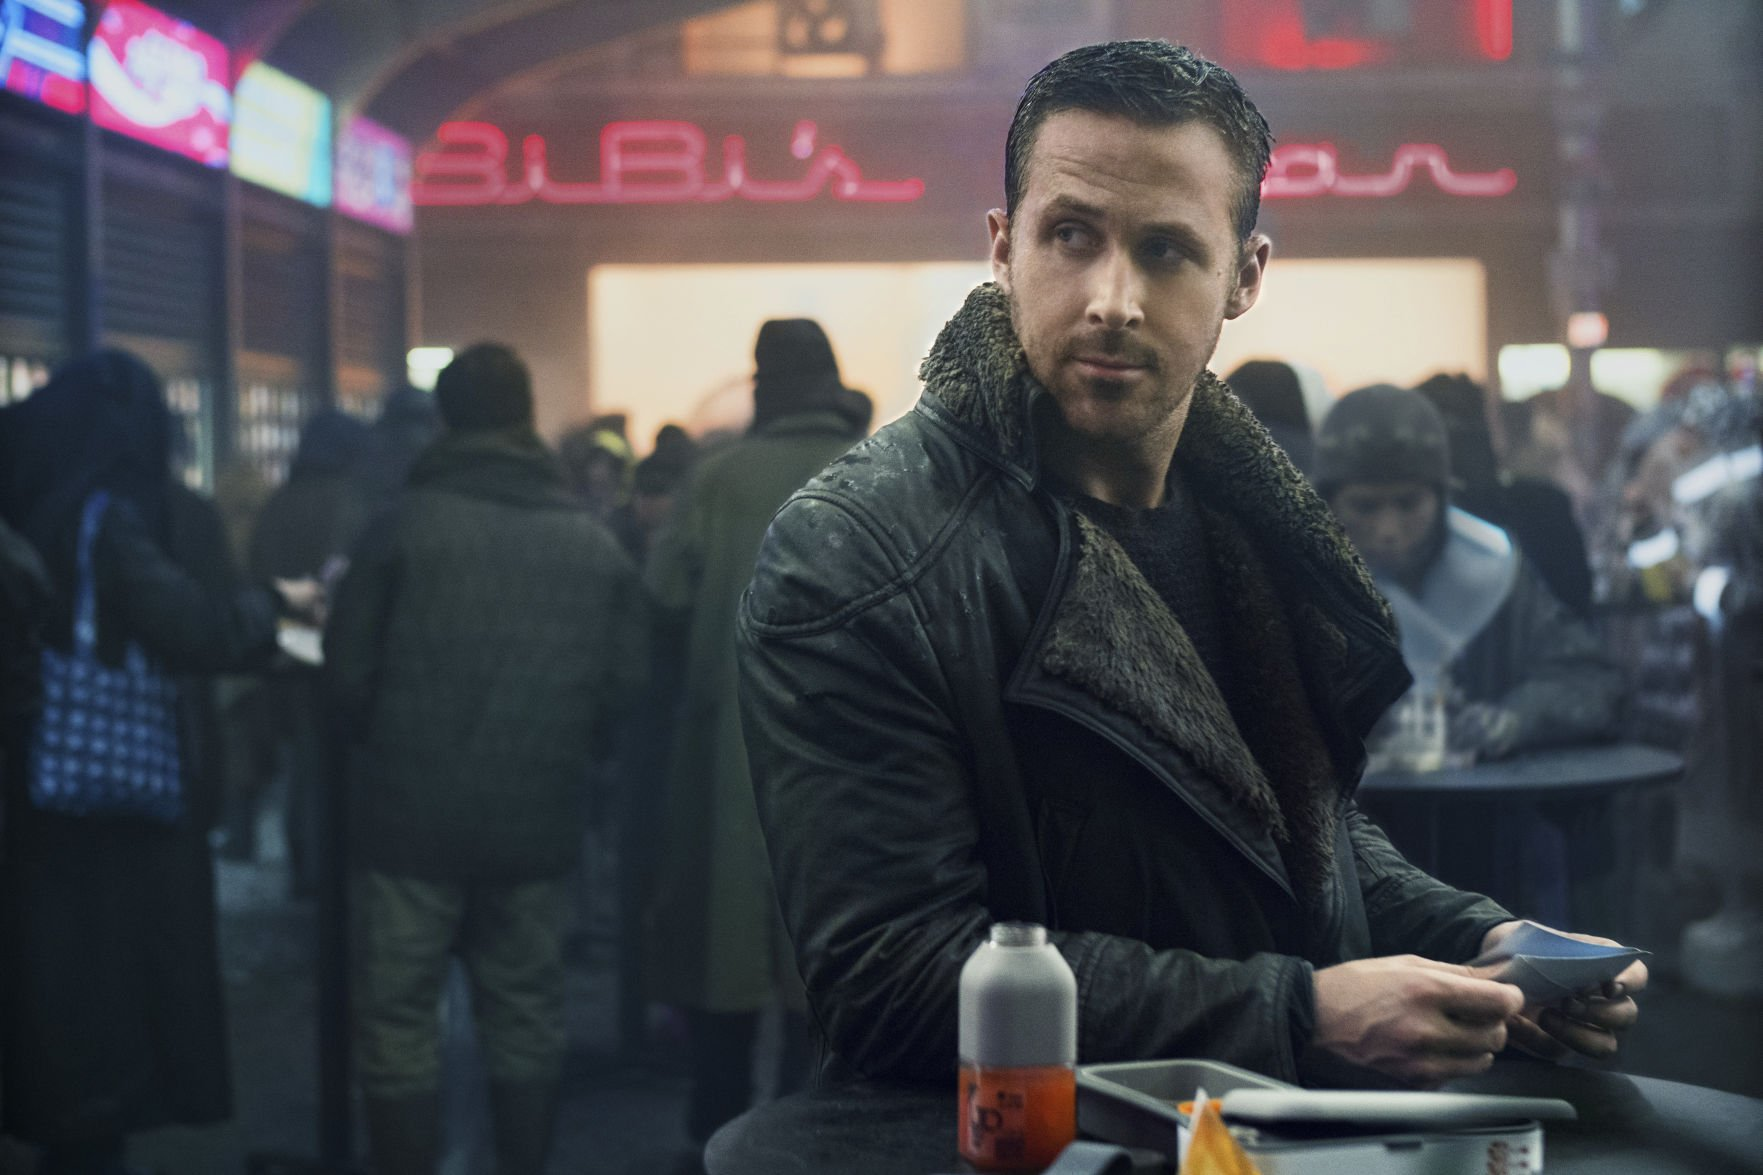 You can now stream the Blade Runner 2049 soundtrack